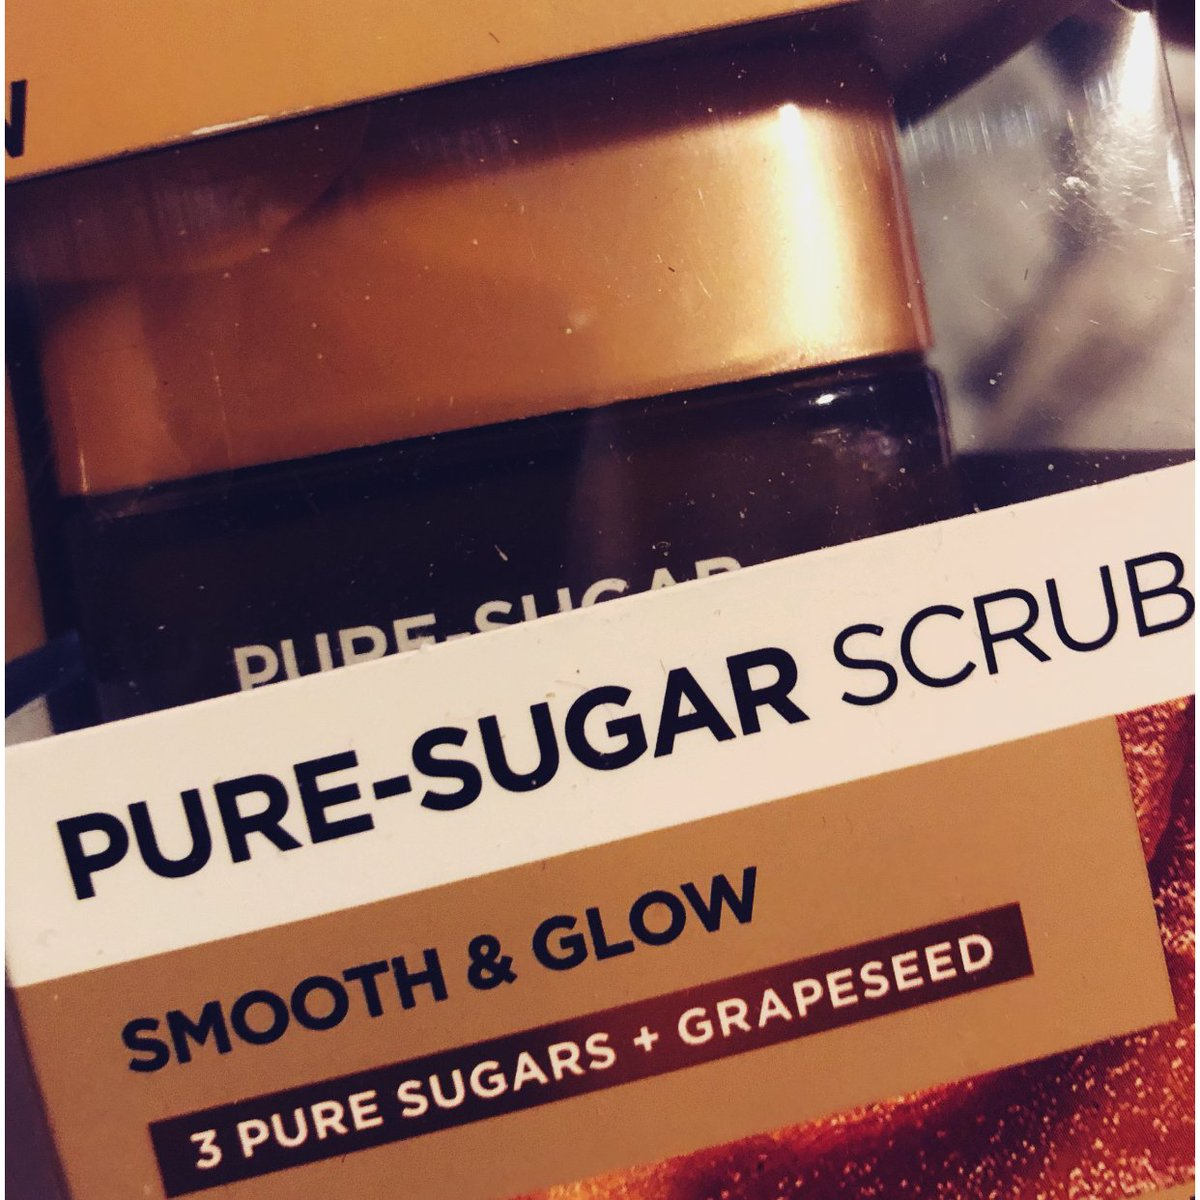 I LOVE L'Oreal Pure Sugar Scrub!!! It exfoliates to soft smooth looking skin. It smells incredible as well. #loreal #puresugarscrub https://t.co/GHiBQ1245D